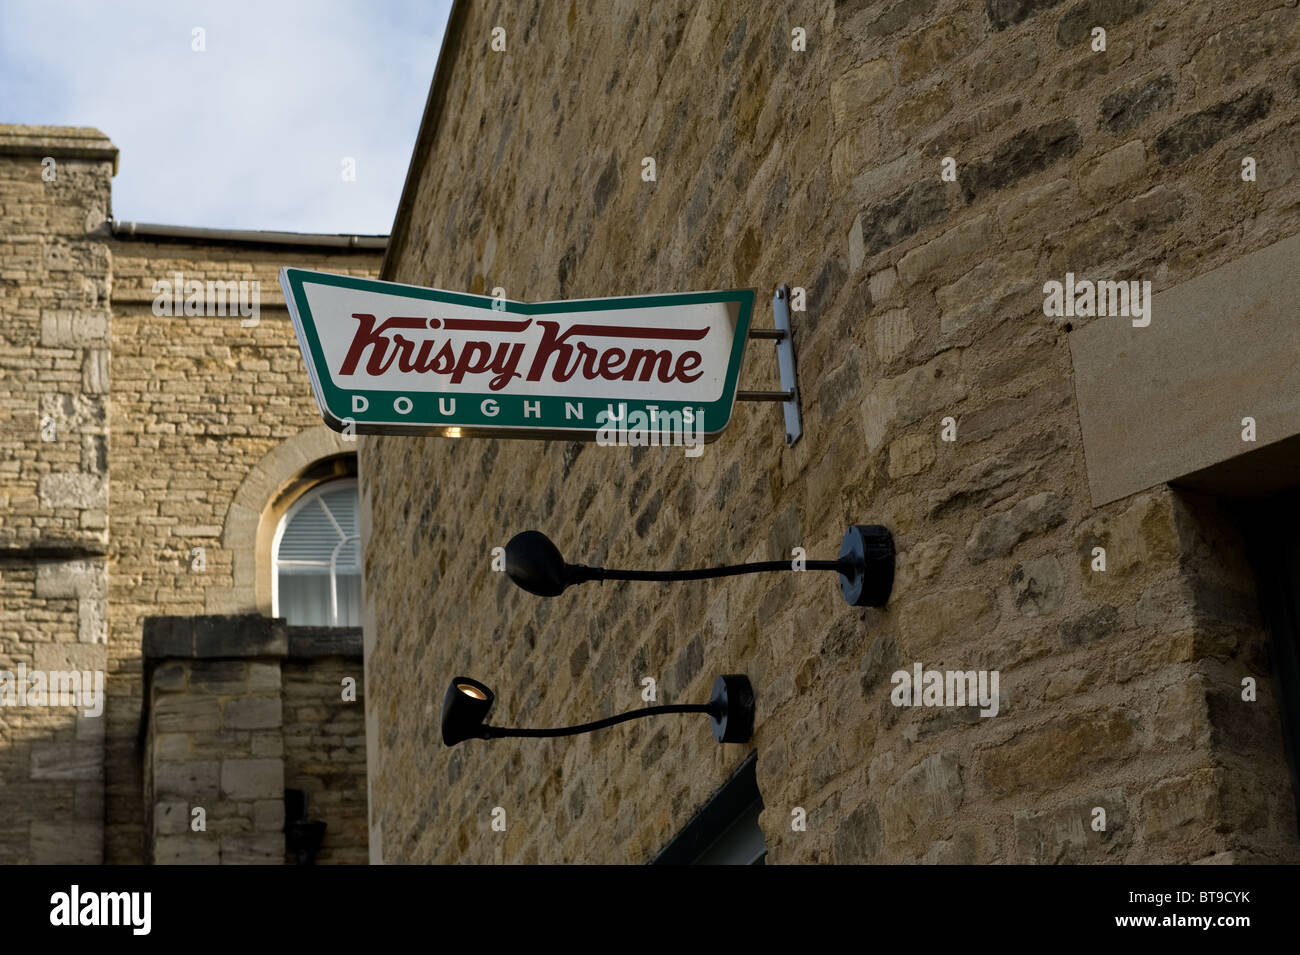 A Krispy Kreme doughnut stall in the Oxford Castle redevelopment in the centre of Oxford, UK - Stock Image